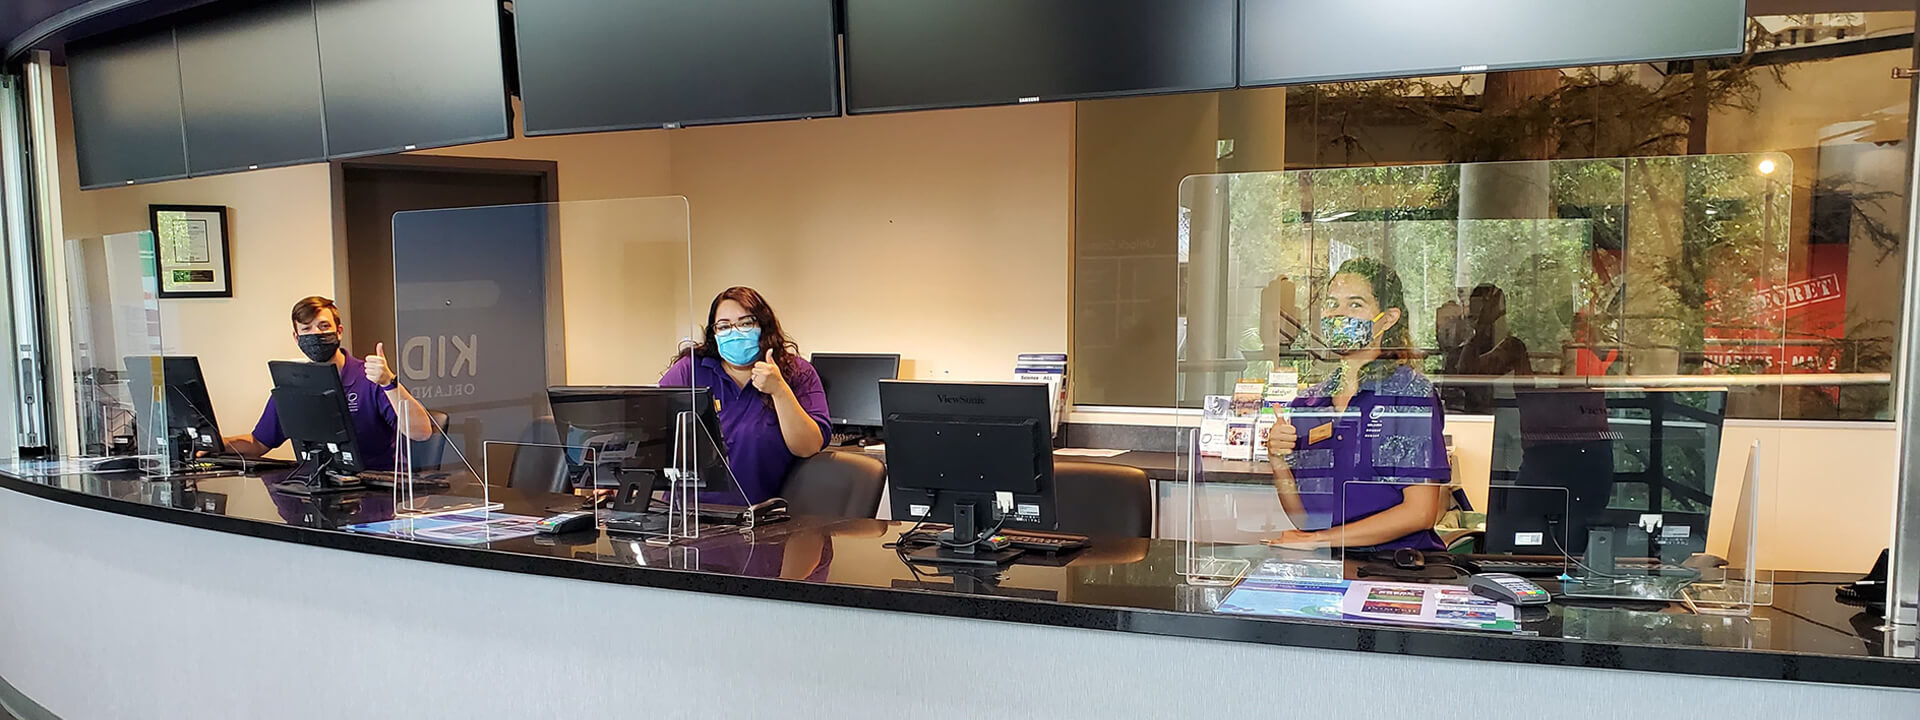 Image of OSC Admissions team in box office behind new plexiglass barriers.